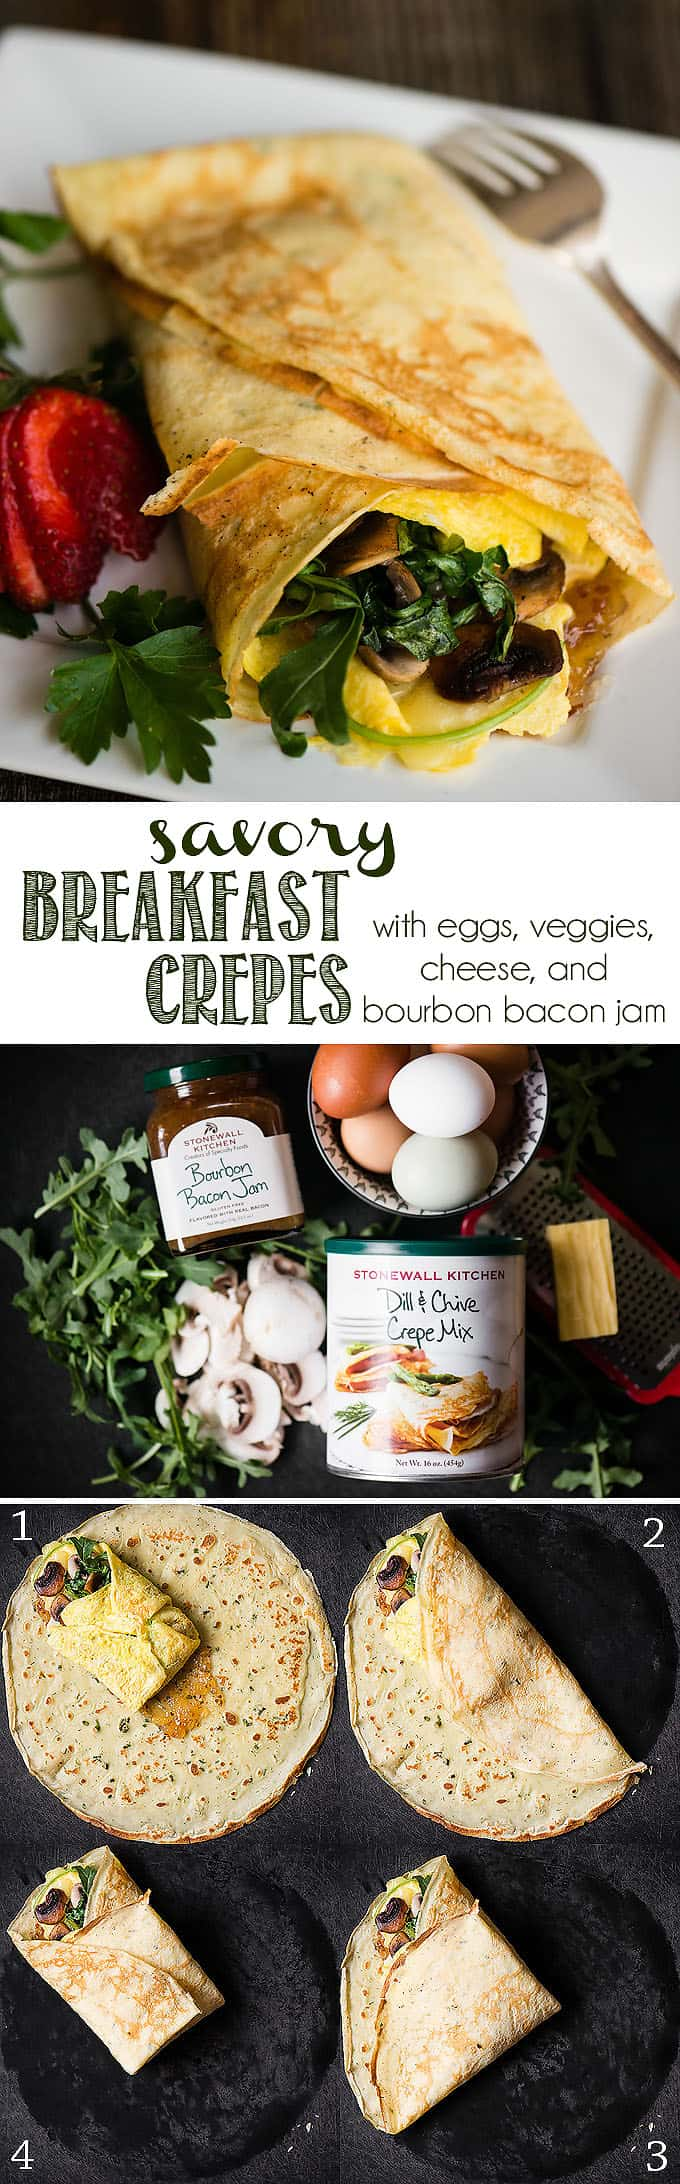 Savory Breakfast Crepes with Bourbon Bacon Jam are an incredibly easy and delicious option to start your day. Savory Stonewall Kitchen Dill & Chive Crepes are wrapped around egg, cheese, arugula and mushrooms. Bourbon Bacon Jam adds an intense sweet and salty flavor that ties the entire spring inspired meal together! #crepes #savorycrepes #dill #chive #bacon #bourbon #baconjam #breakfast #breakfastcrepes #eggs #arugula #mushroom